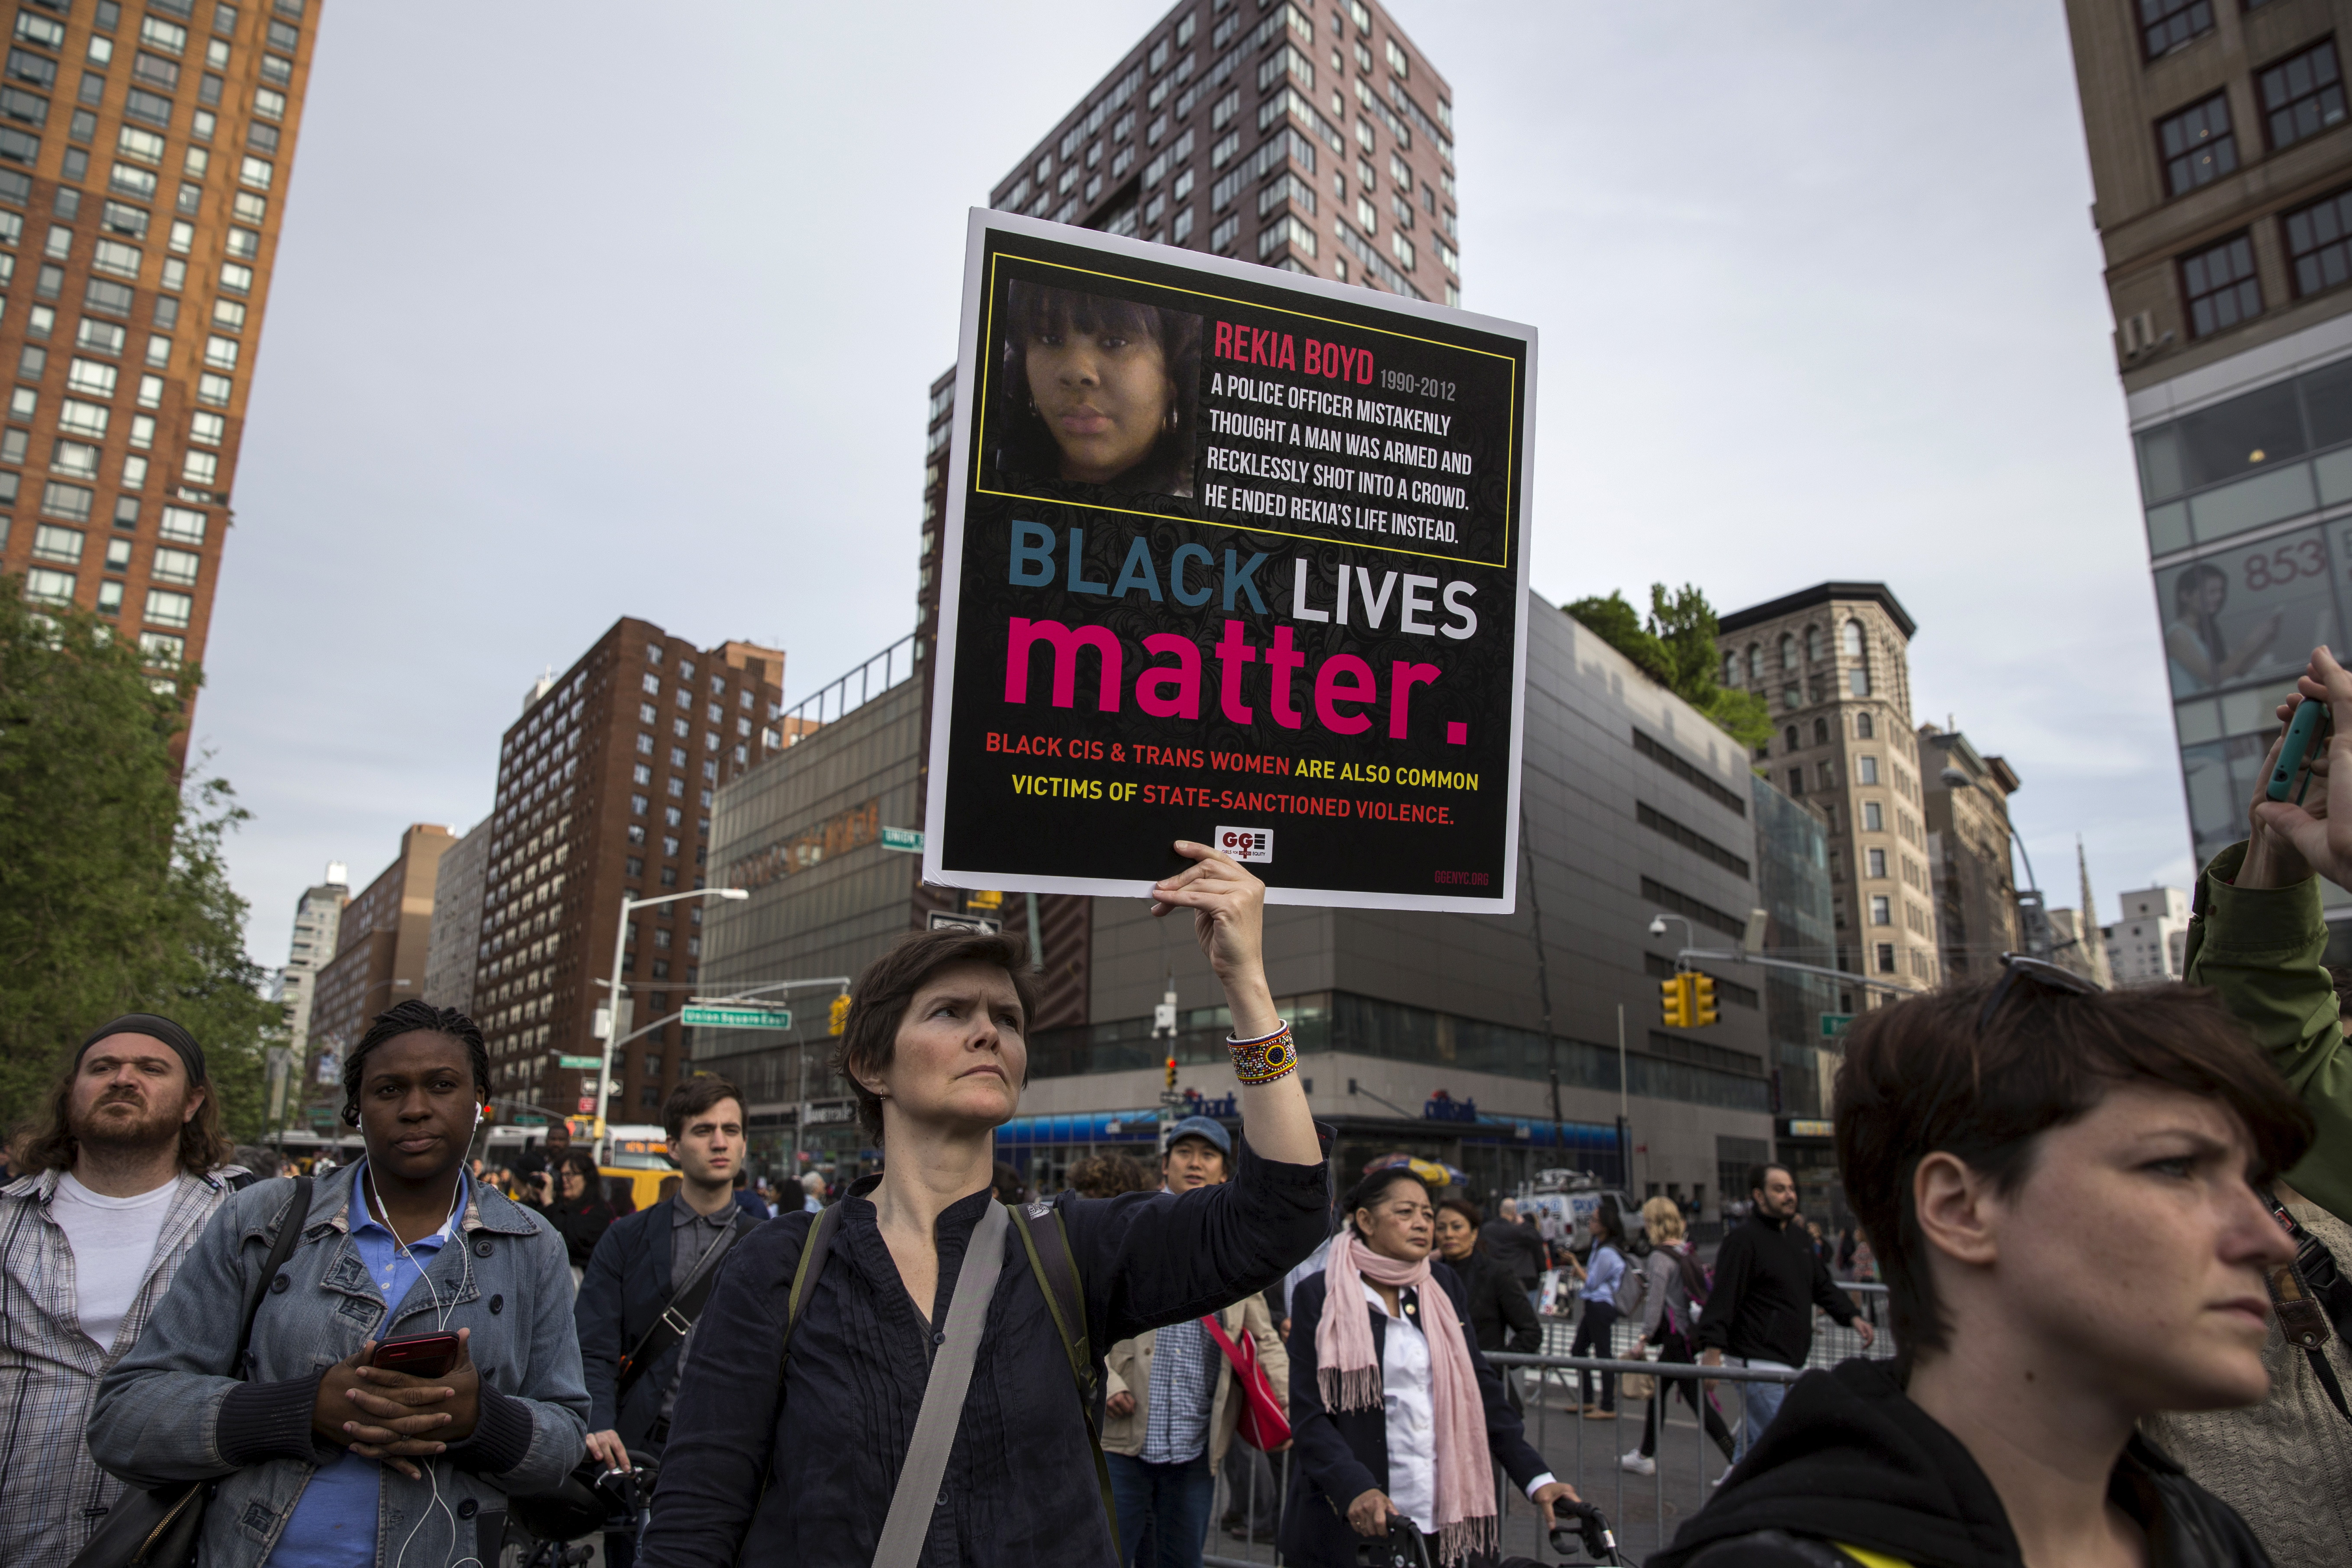 Activists hold placards as they take part in a vigil in what organizers said was in  remembrance of black women and girls killed by the police,  in Union Square, Manhattan, New York May 20, 2015